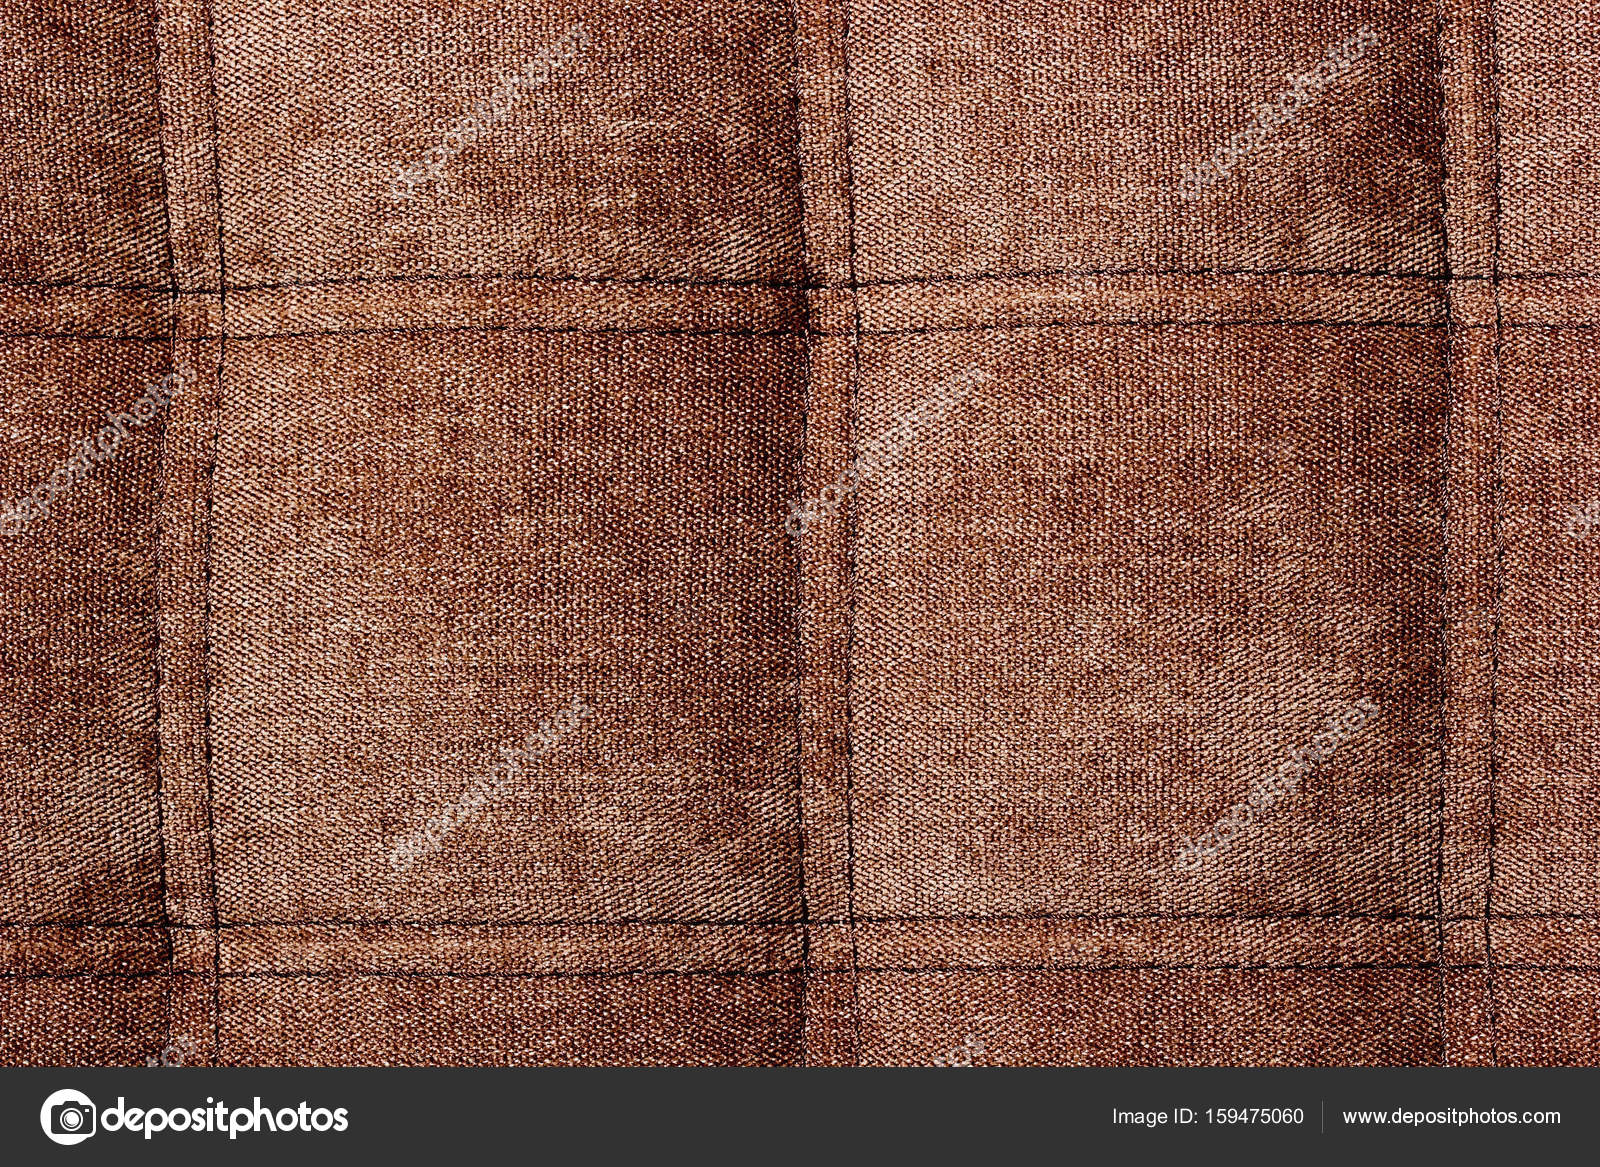 Background Pattern Closed Up Of Abstract Texture Of Brown Fabric